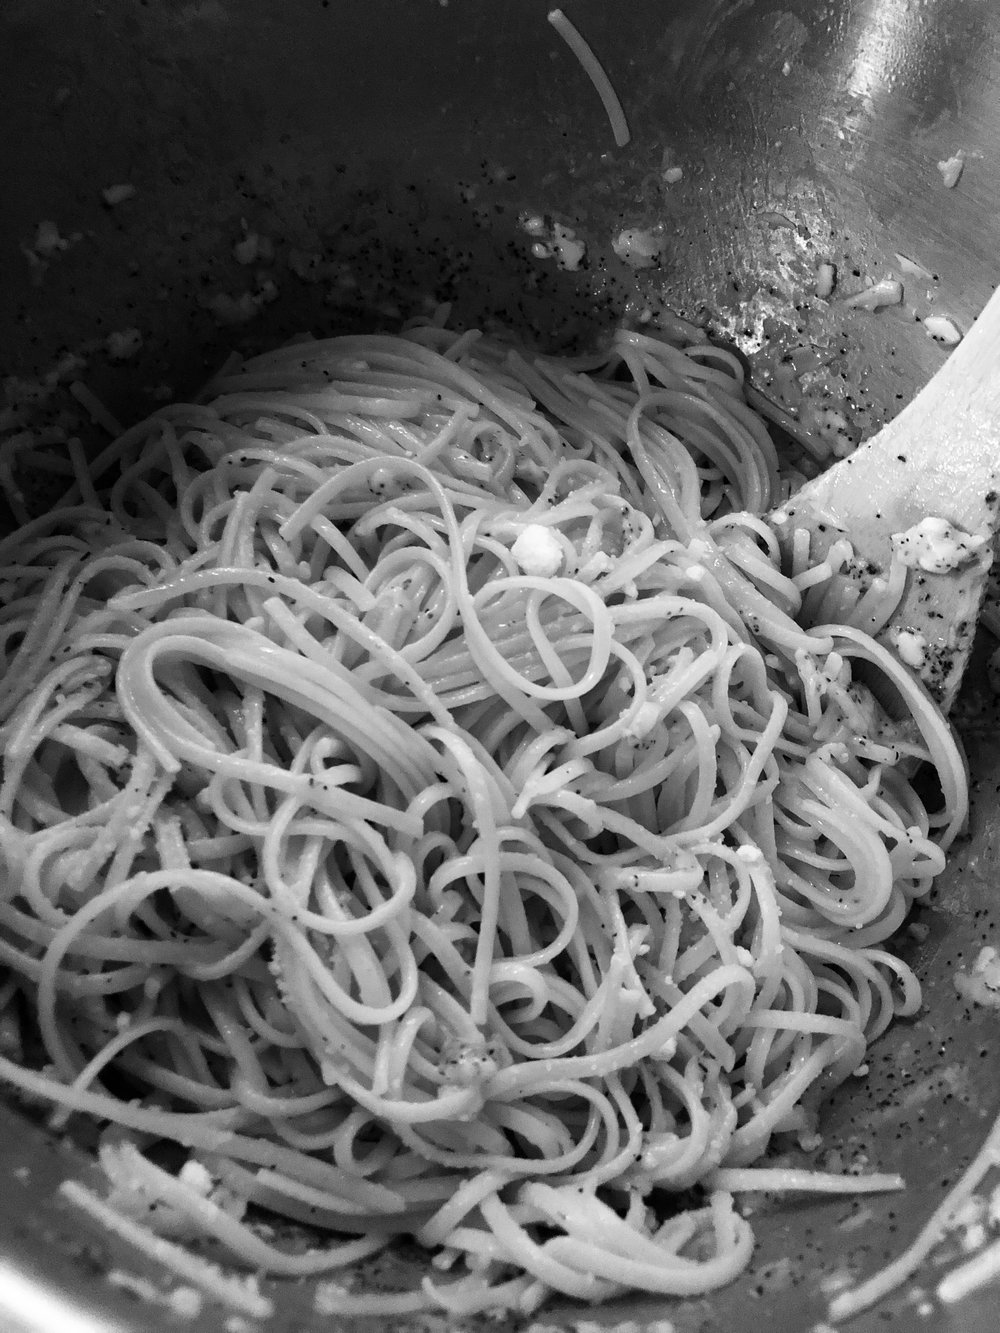 Add an lb of spaghetti, linguini or thin linguine to a pot of salted boiling water. When the pasta is ardent drain and immediately add the pasta to the mixing bowl. Mix thoroughly so the pasta is covered entirely. The cheese melts into a coating which covers all pasta. Add salt and reserved pasta water according to your preferences.